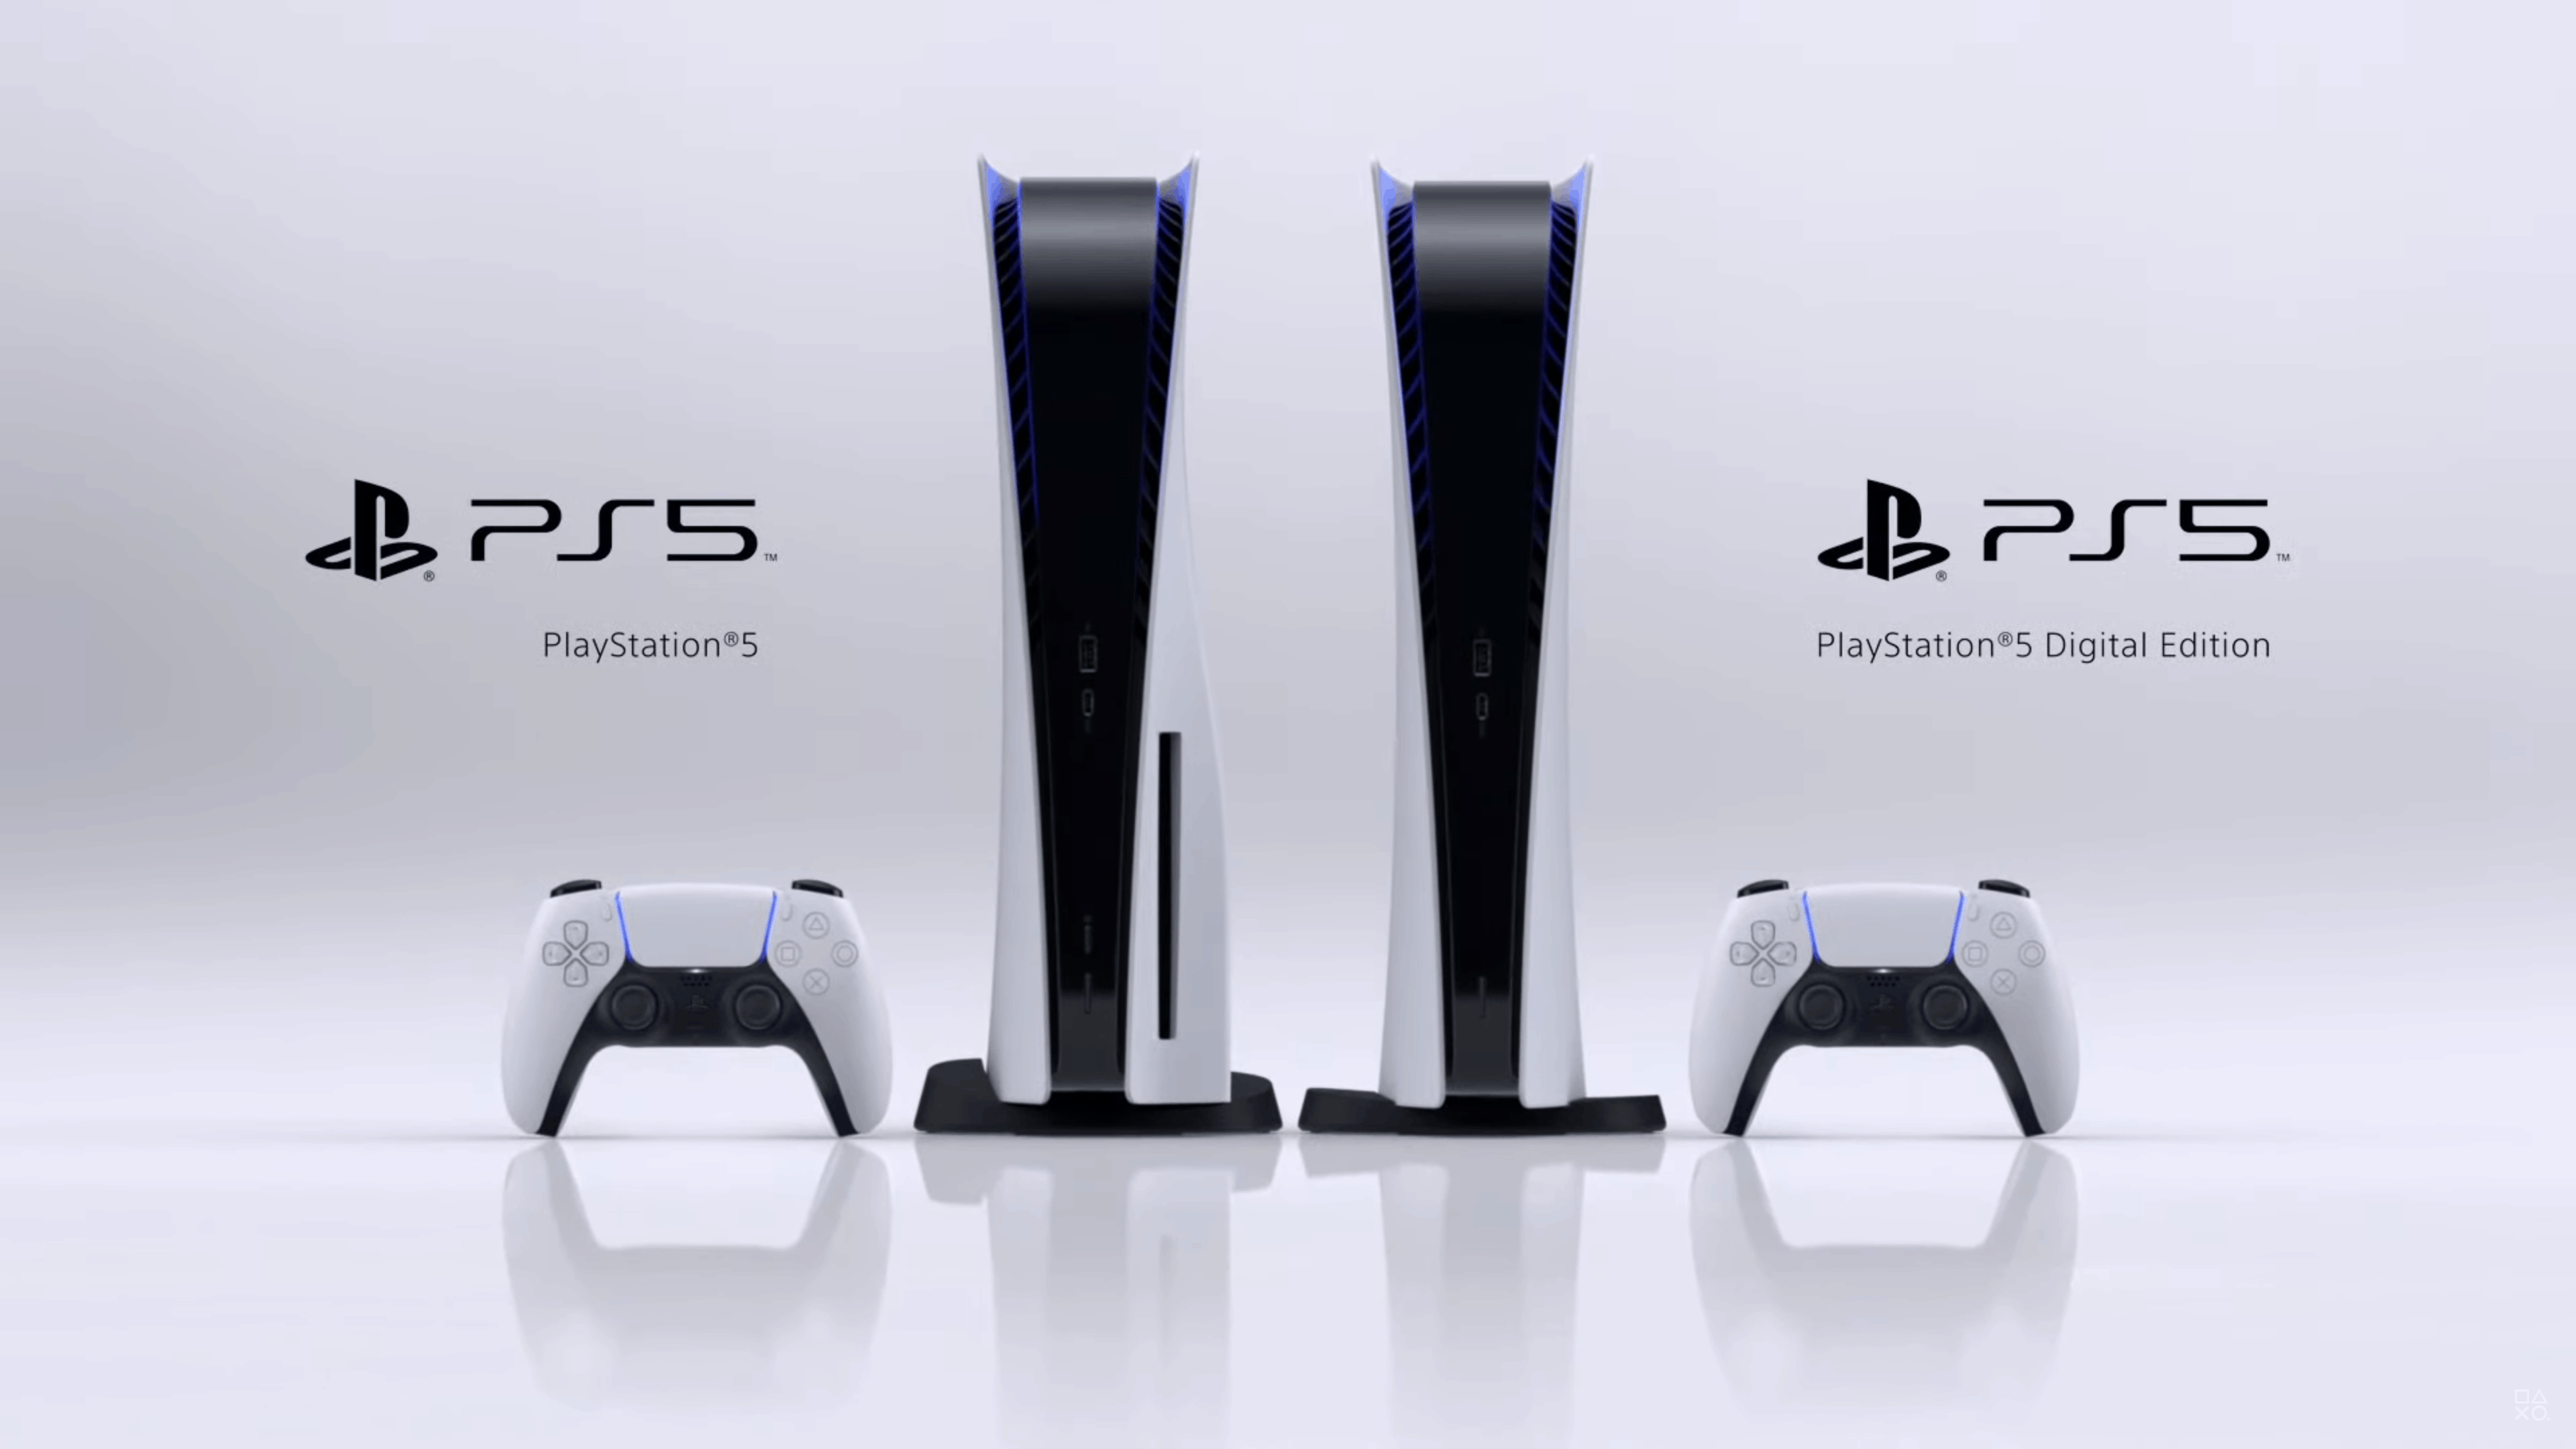 PlayStation 5 gaming console and PS5 game titles announced